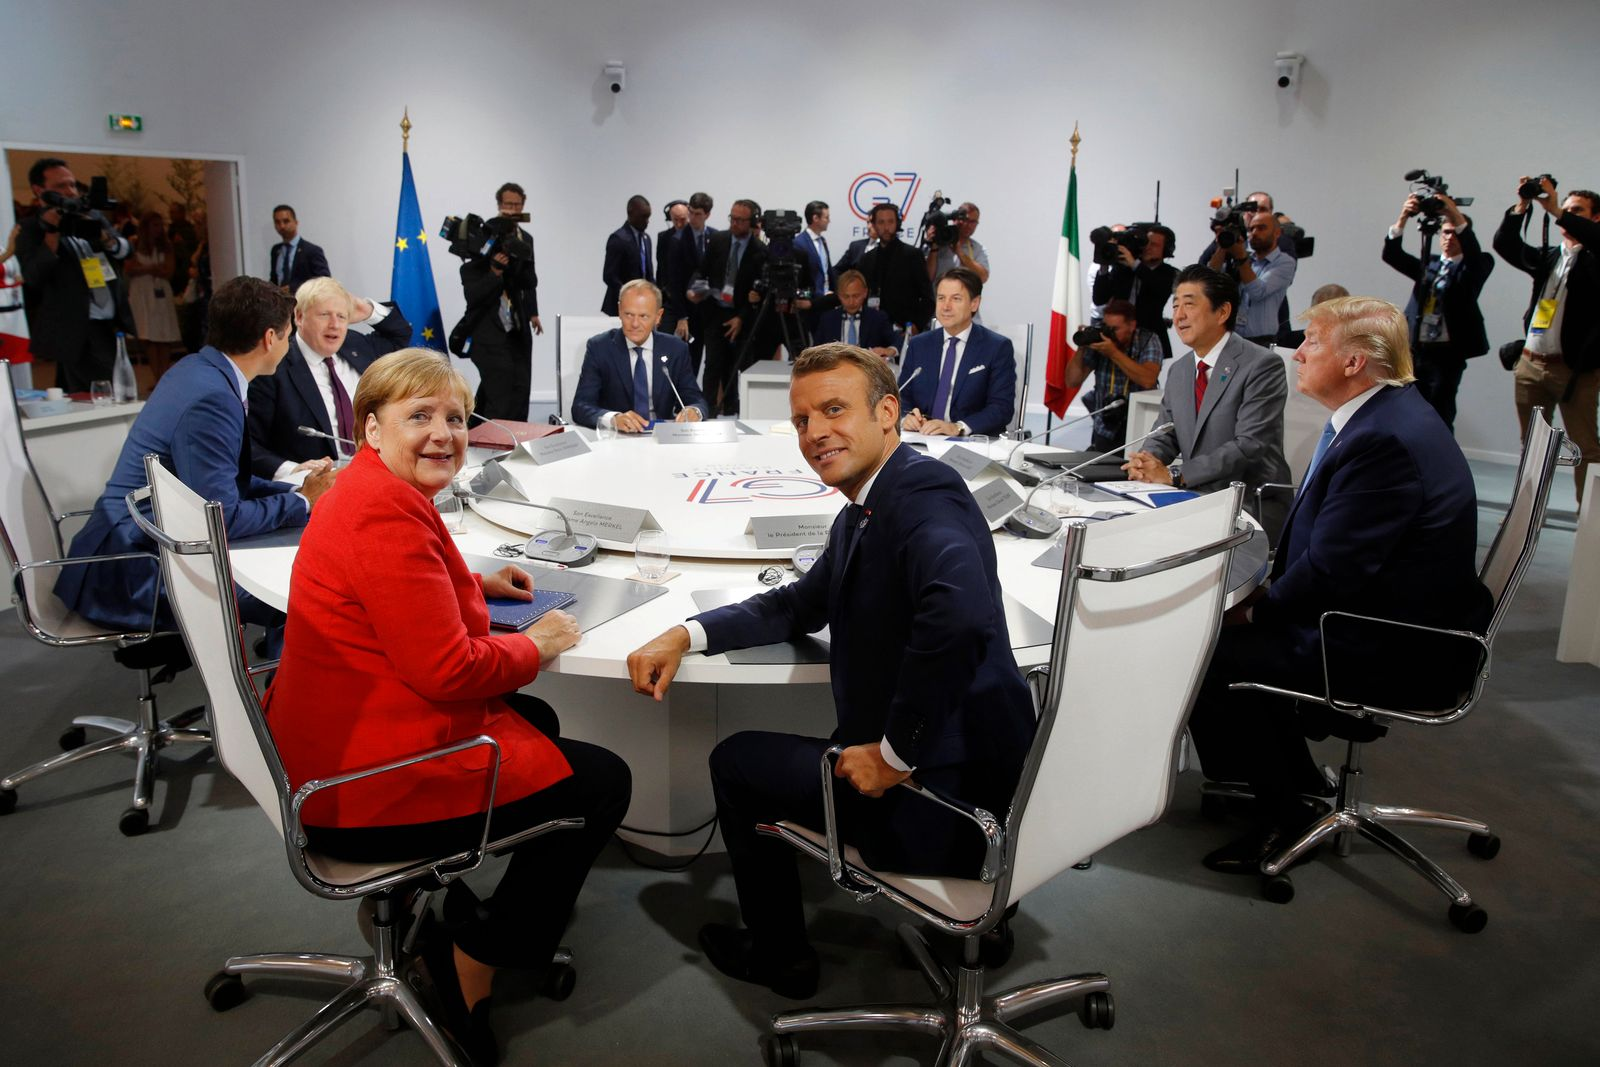 G7 Back in the Room